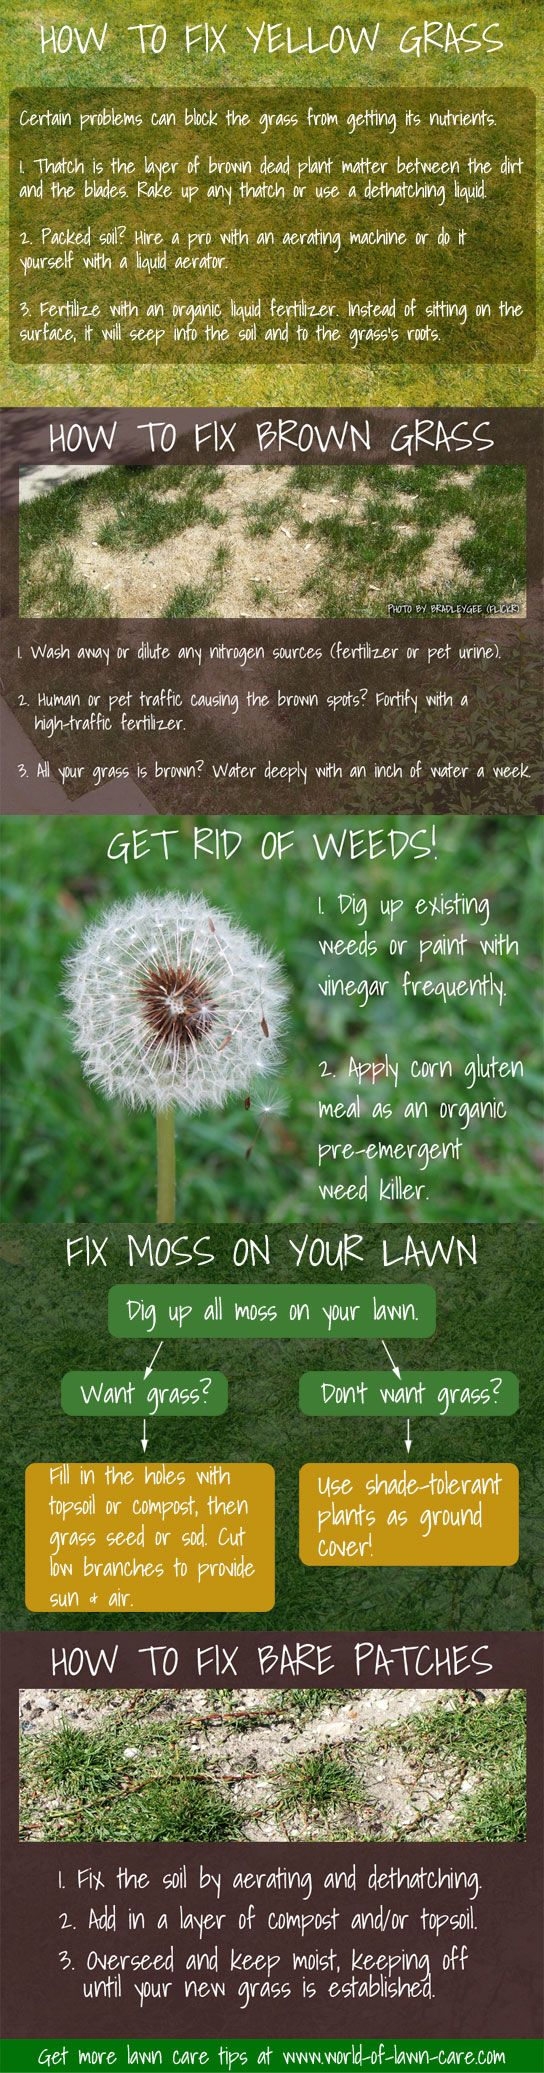 new flyer gopher template lawnsite com lawn care lawn repair is easy to do you just need to know the best way to get it back into shape here are the five most common problems and the lawn care know how